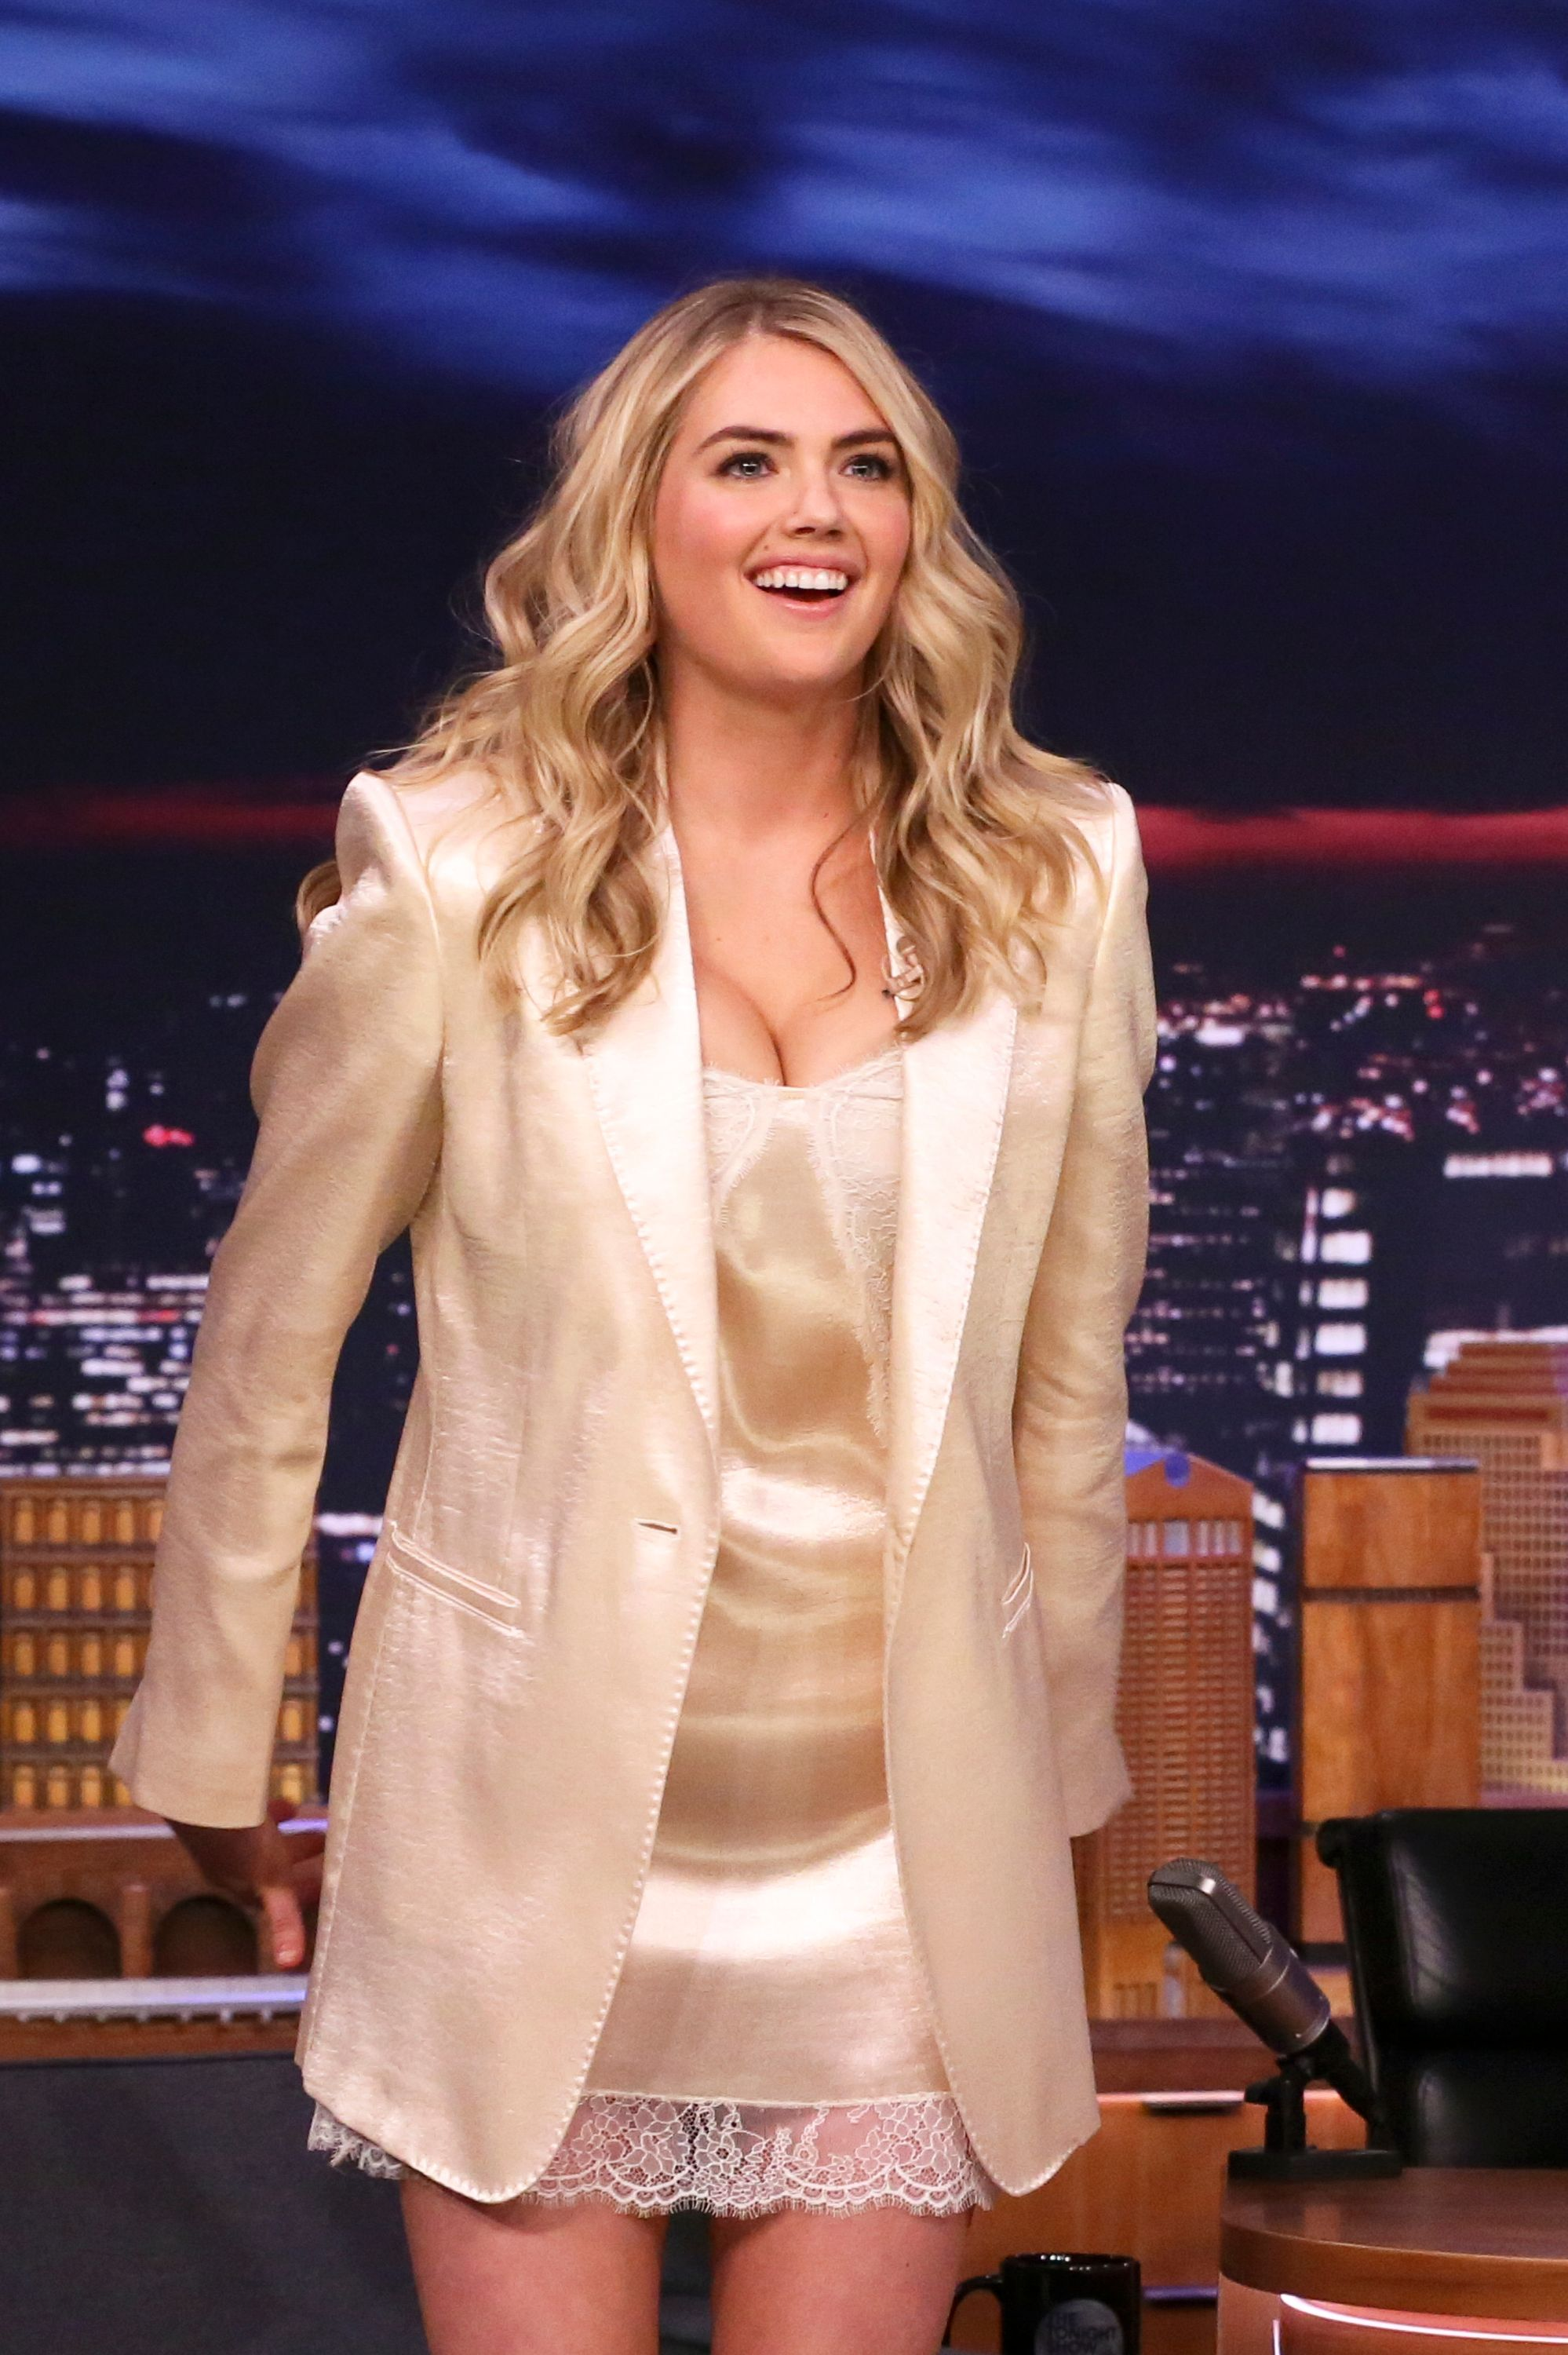 Kate Upton Breastfeeds In Swimsuit Slams Ridiculous Weight Loss Pressures